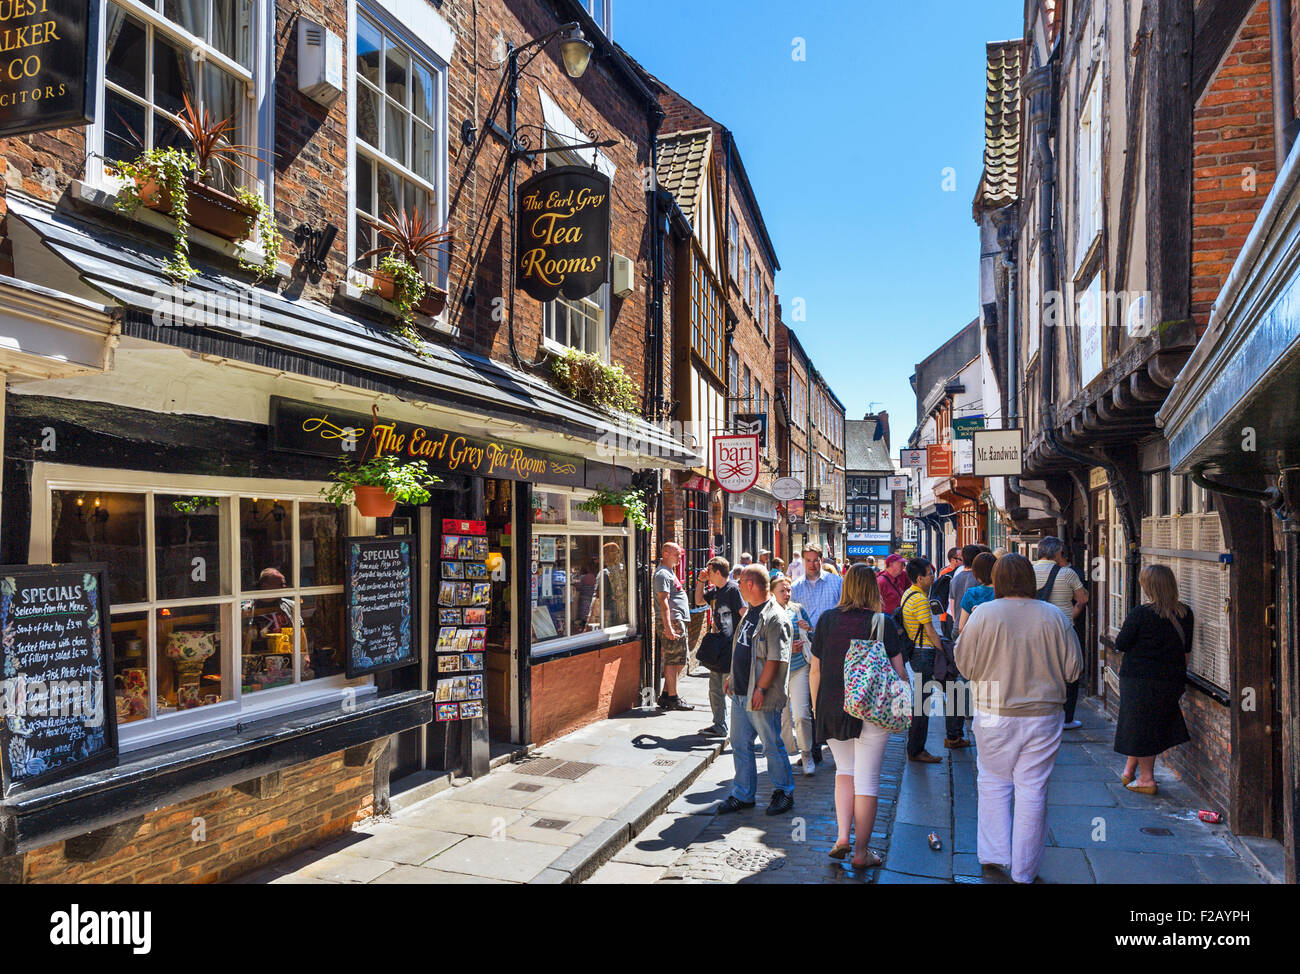 York, Shambles. Pubs, shops and cafes on the historic Shambles, York, England, UK - Stock Image